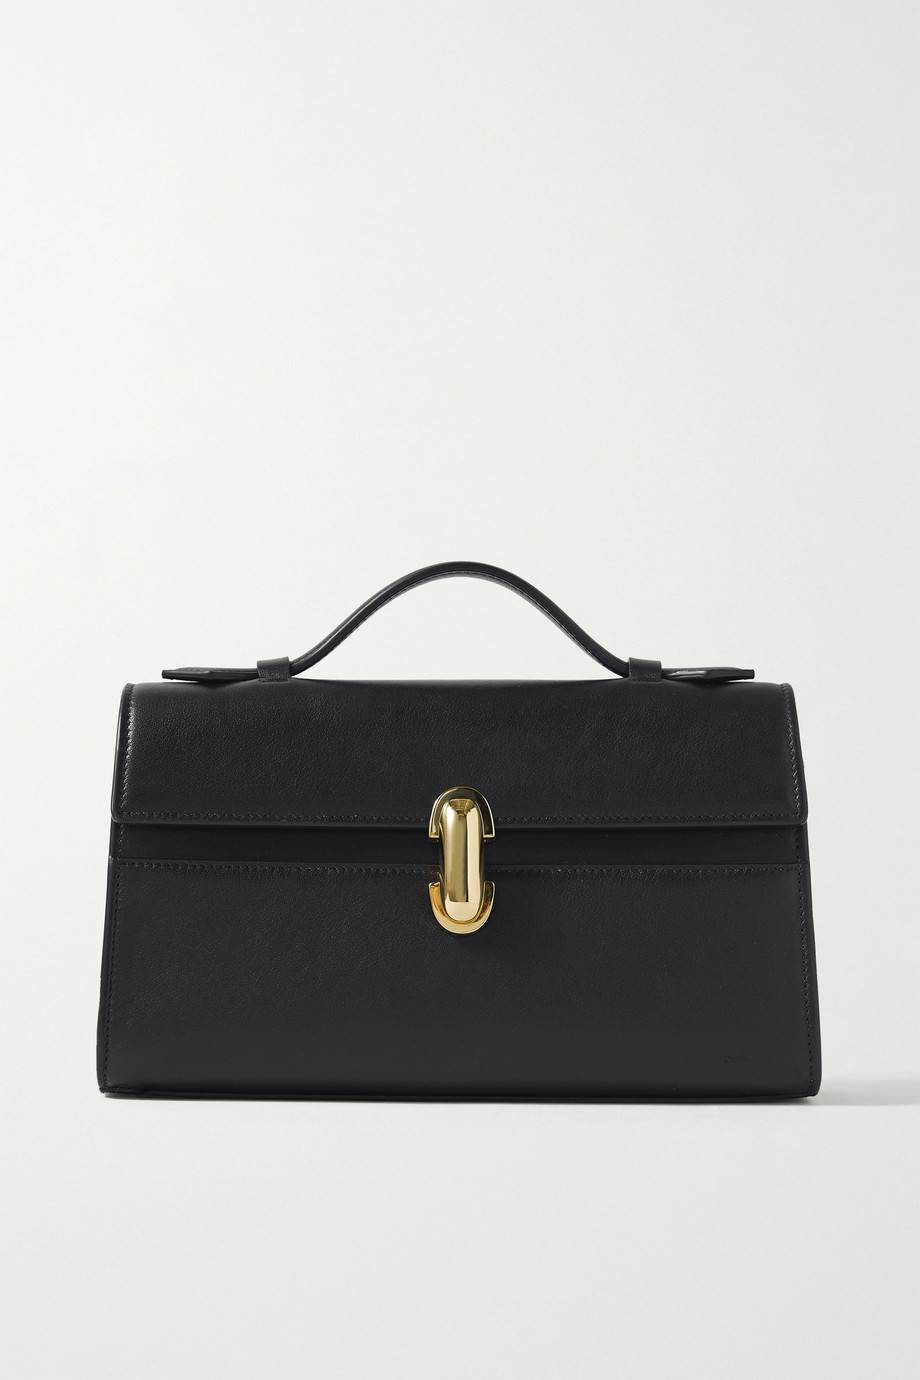 Savette Symmetry Pochette leather tote